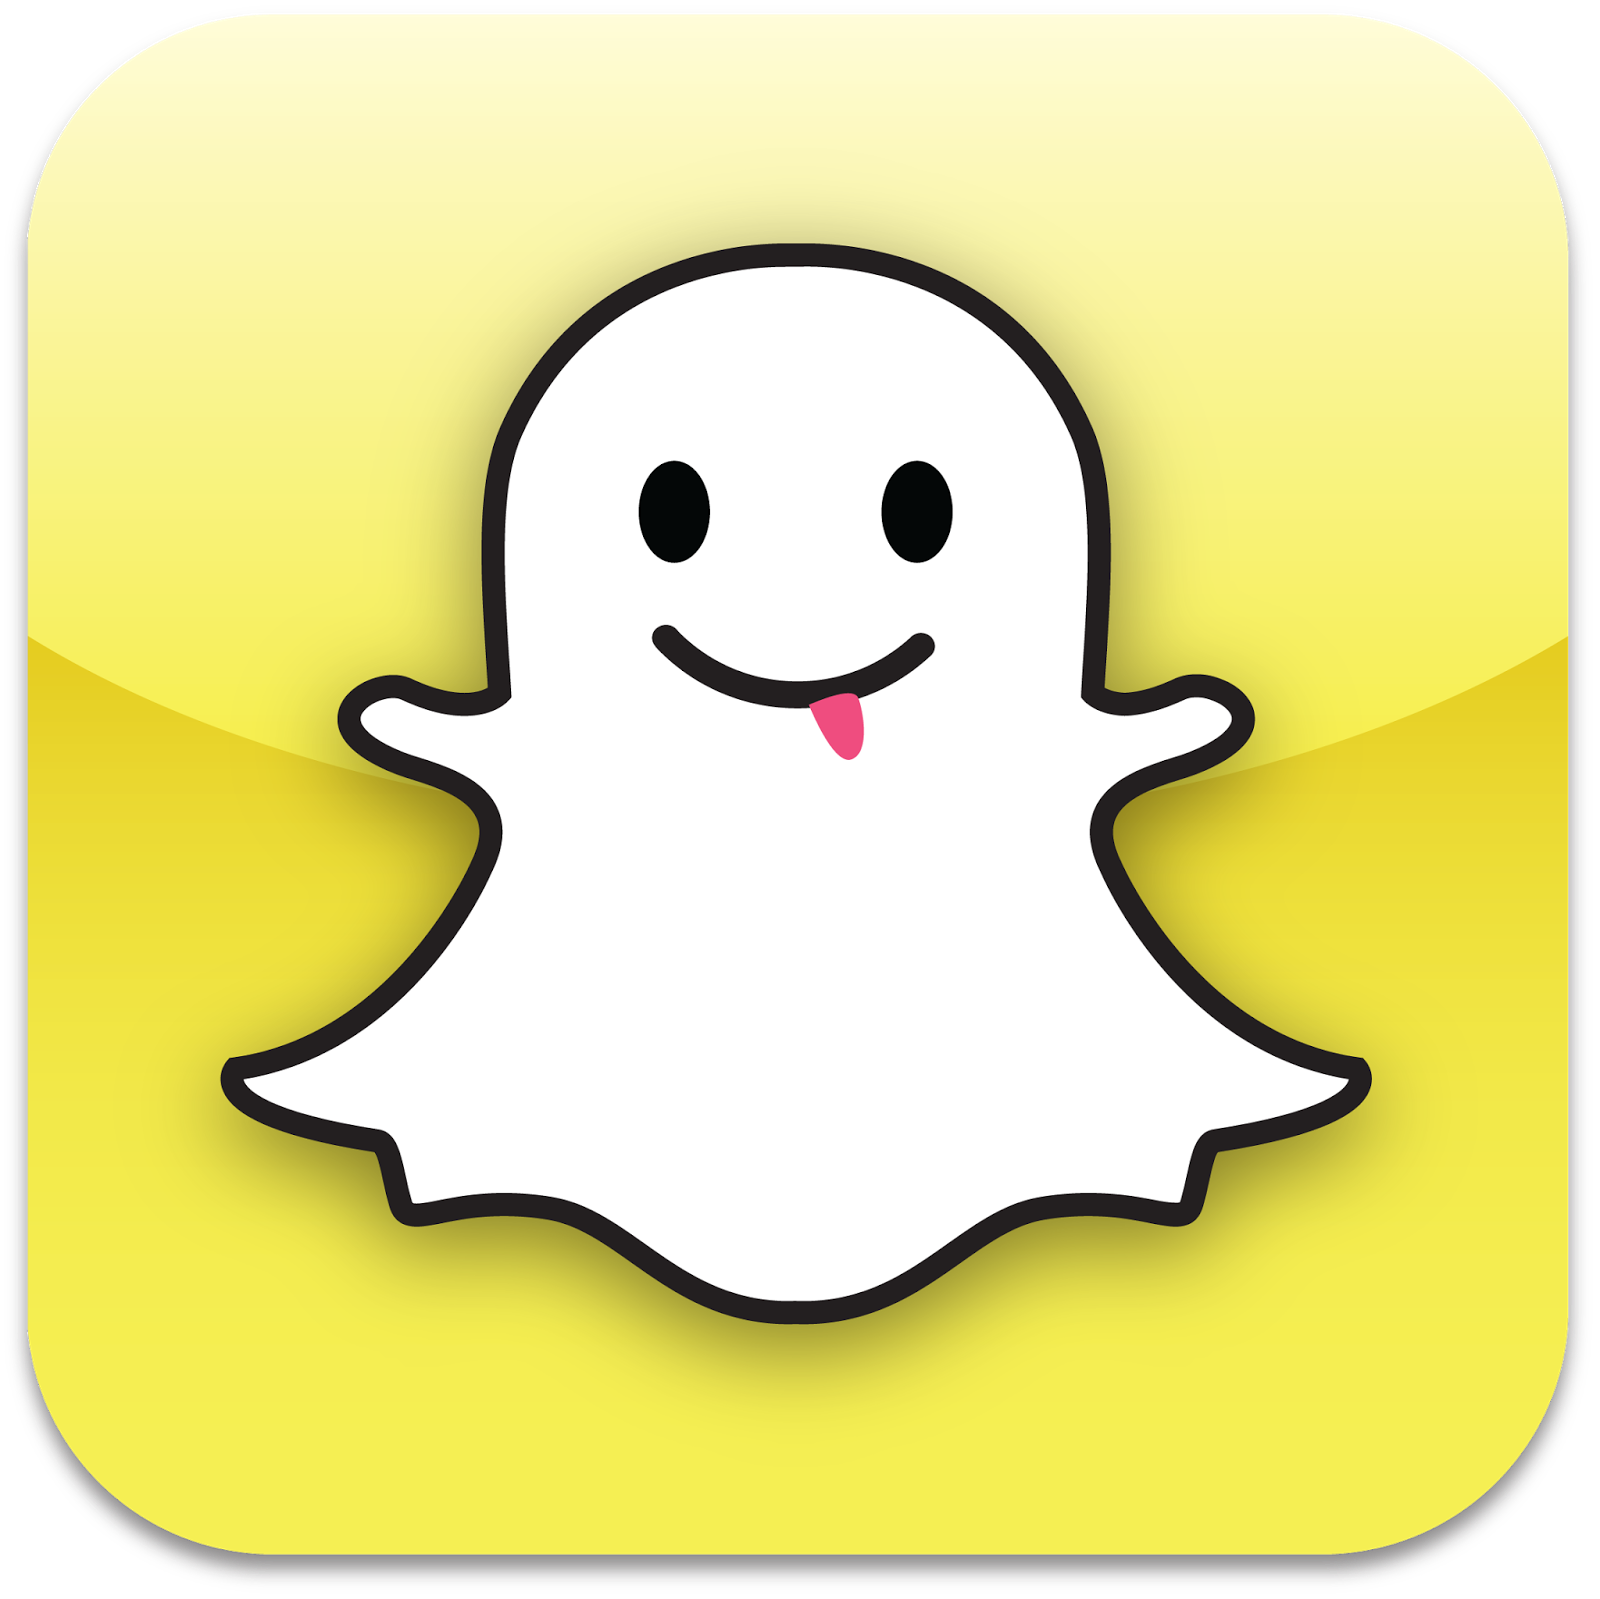 Free Download Snapchat for PC Laptop Windows 7, 8.1 and